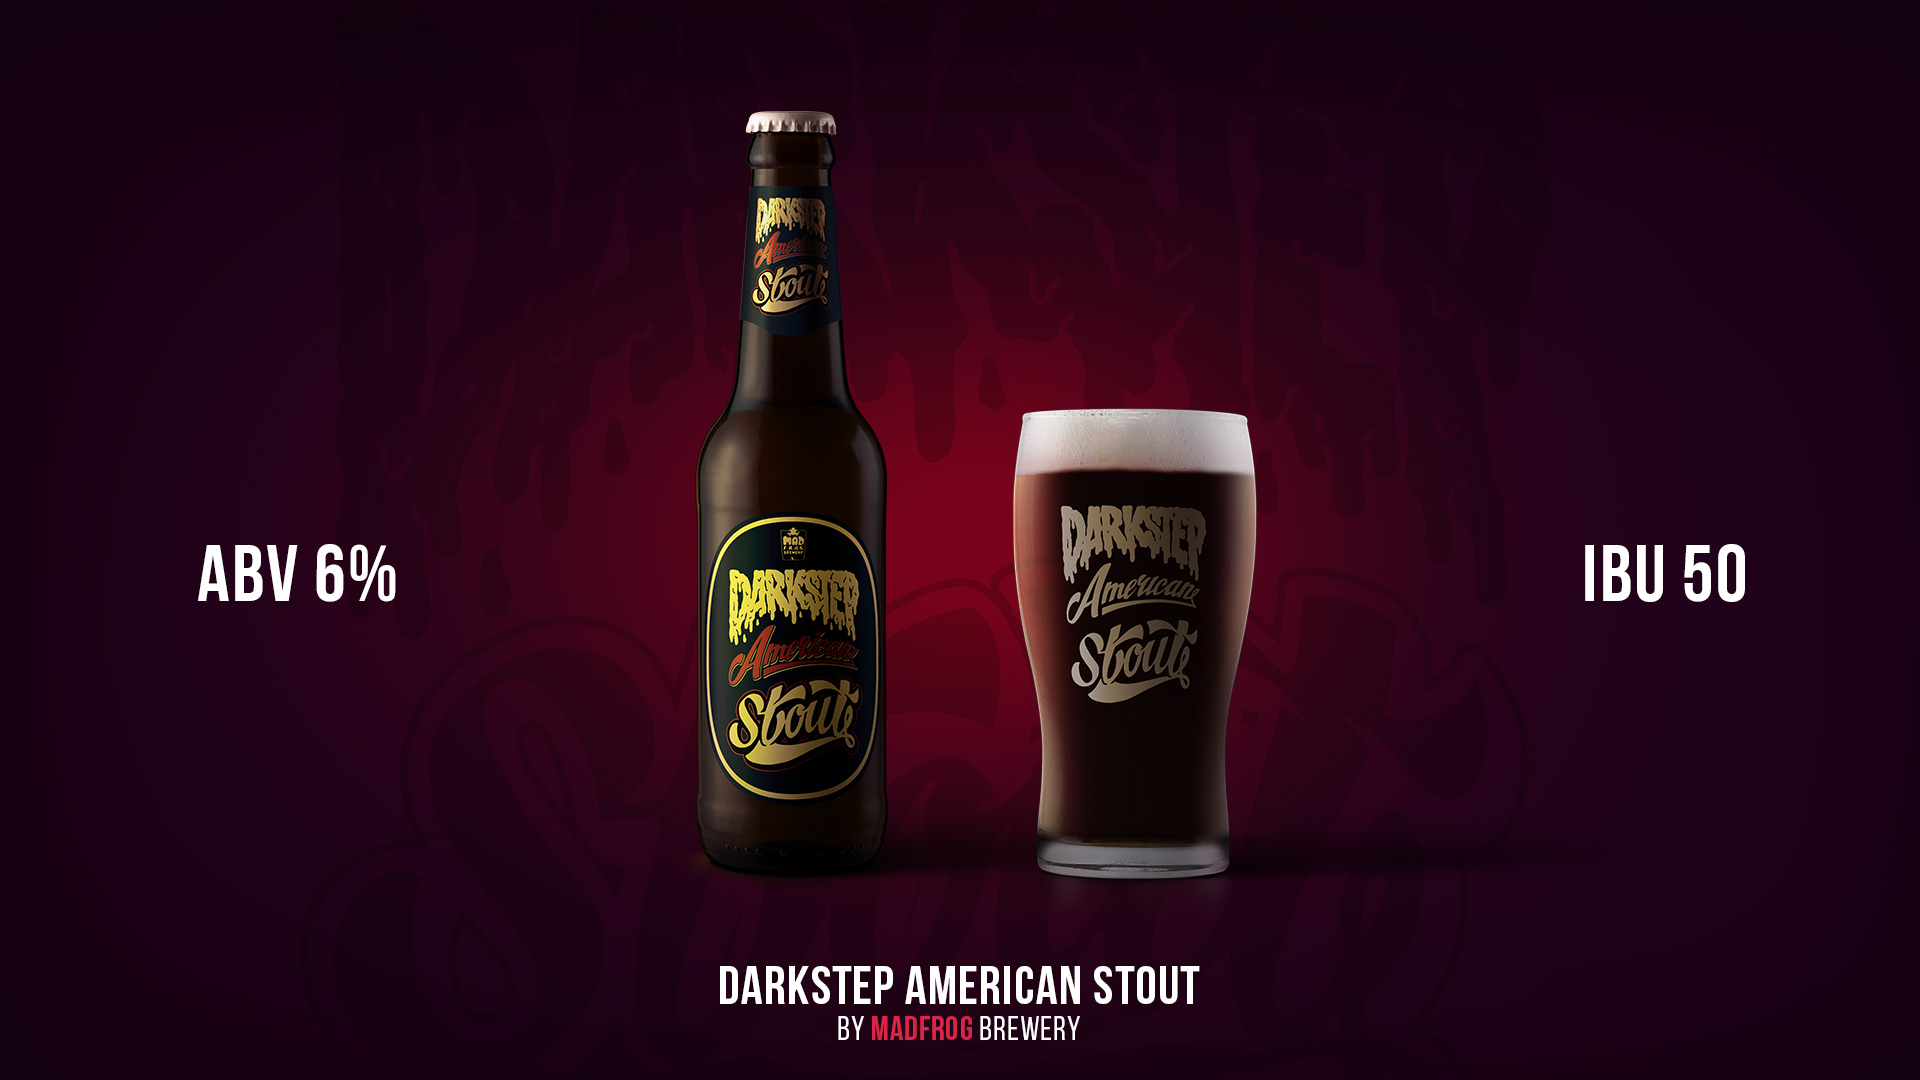 http://madfrog.by/wp-content/uploads/2017/05/darkstep_american_stout.jpg